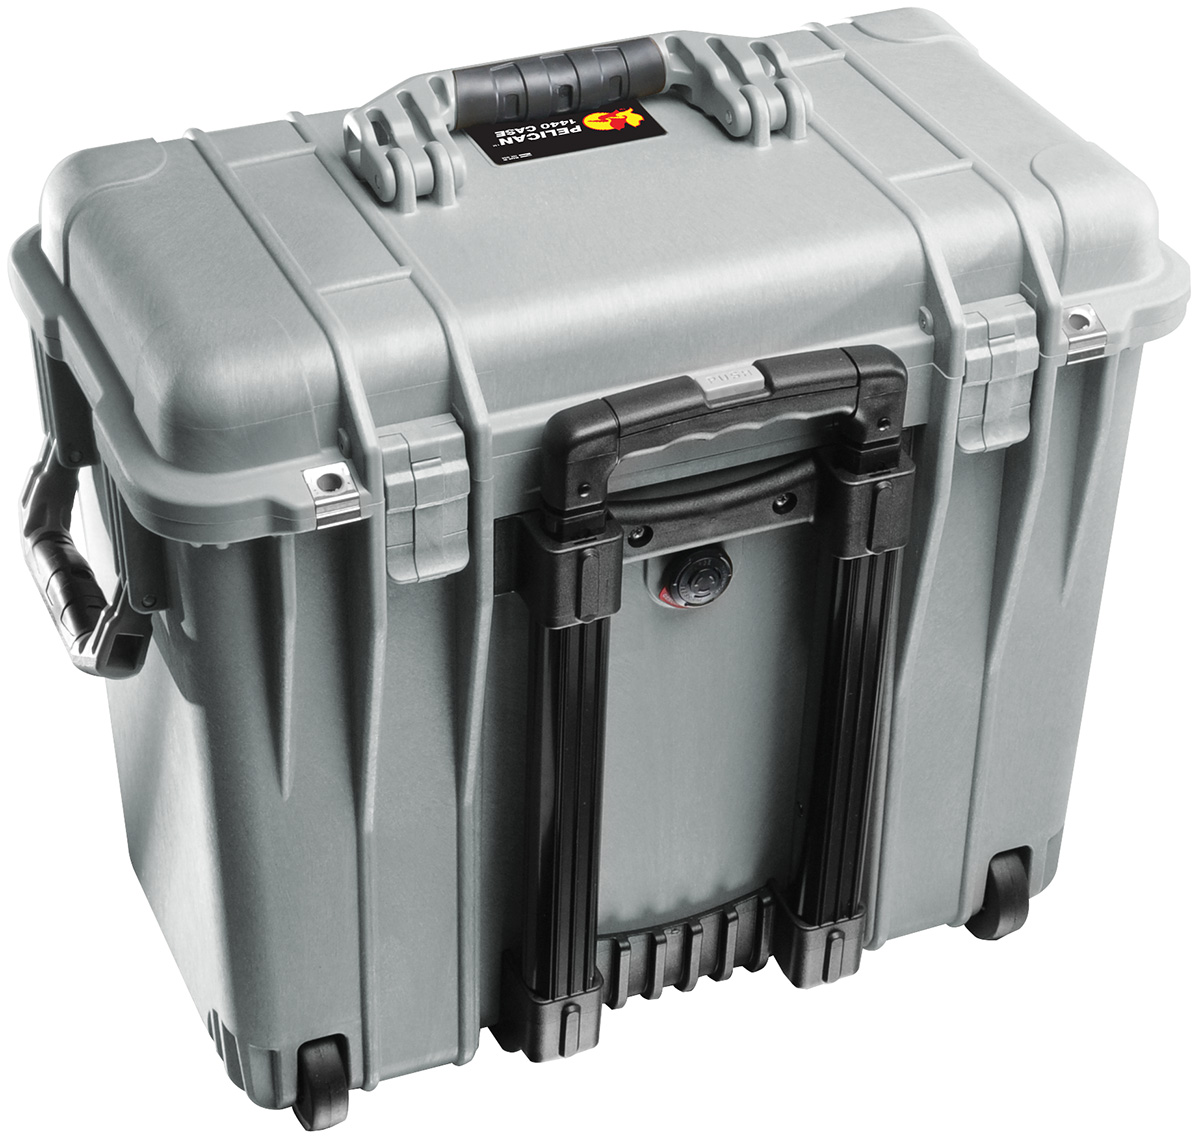 pelican peli products 1440 rolling document hard case